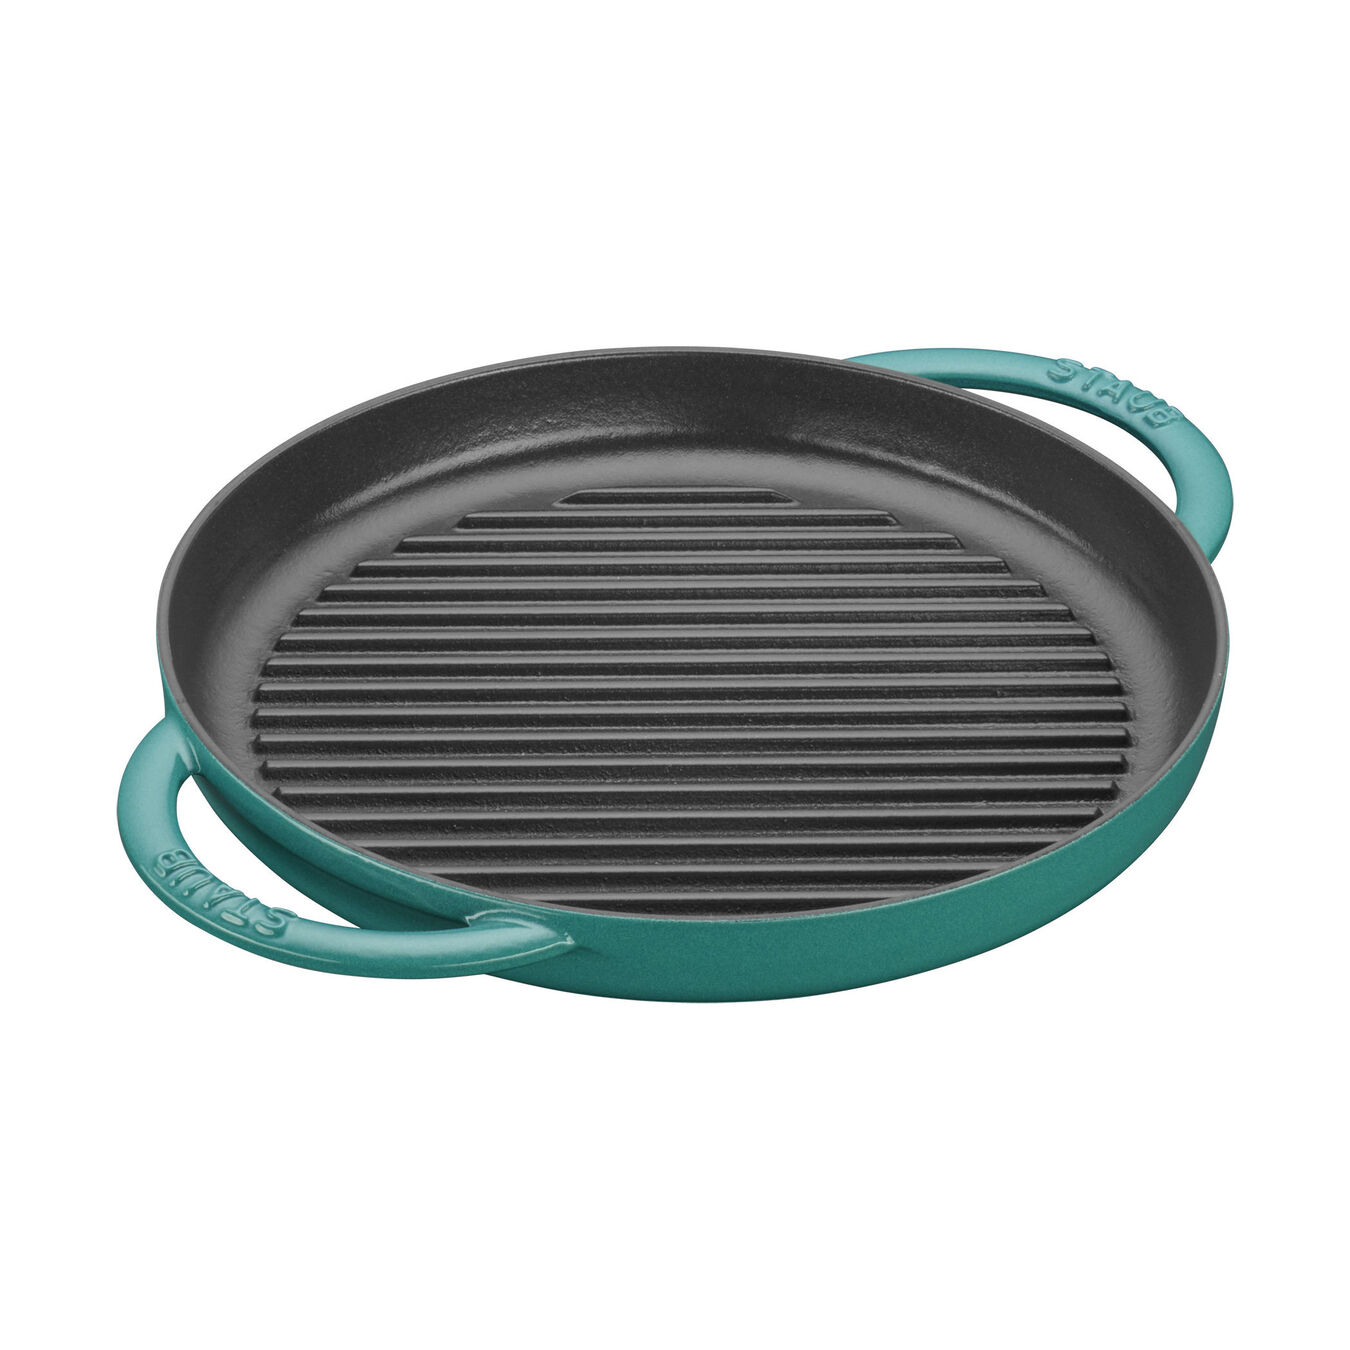 10-inch, Round Double Handle Pure Grill, turquoise,,large 1